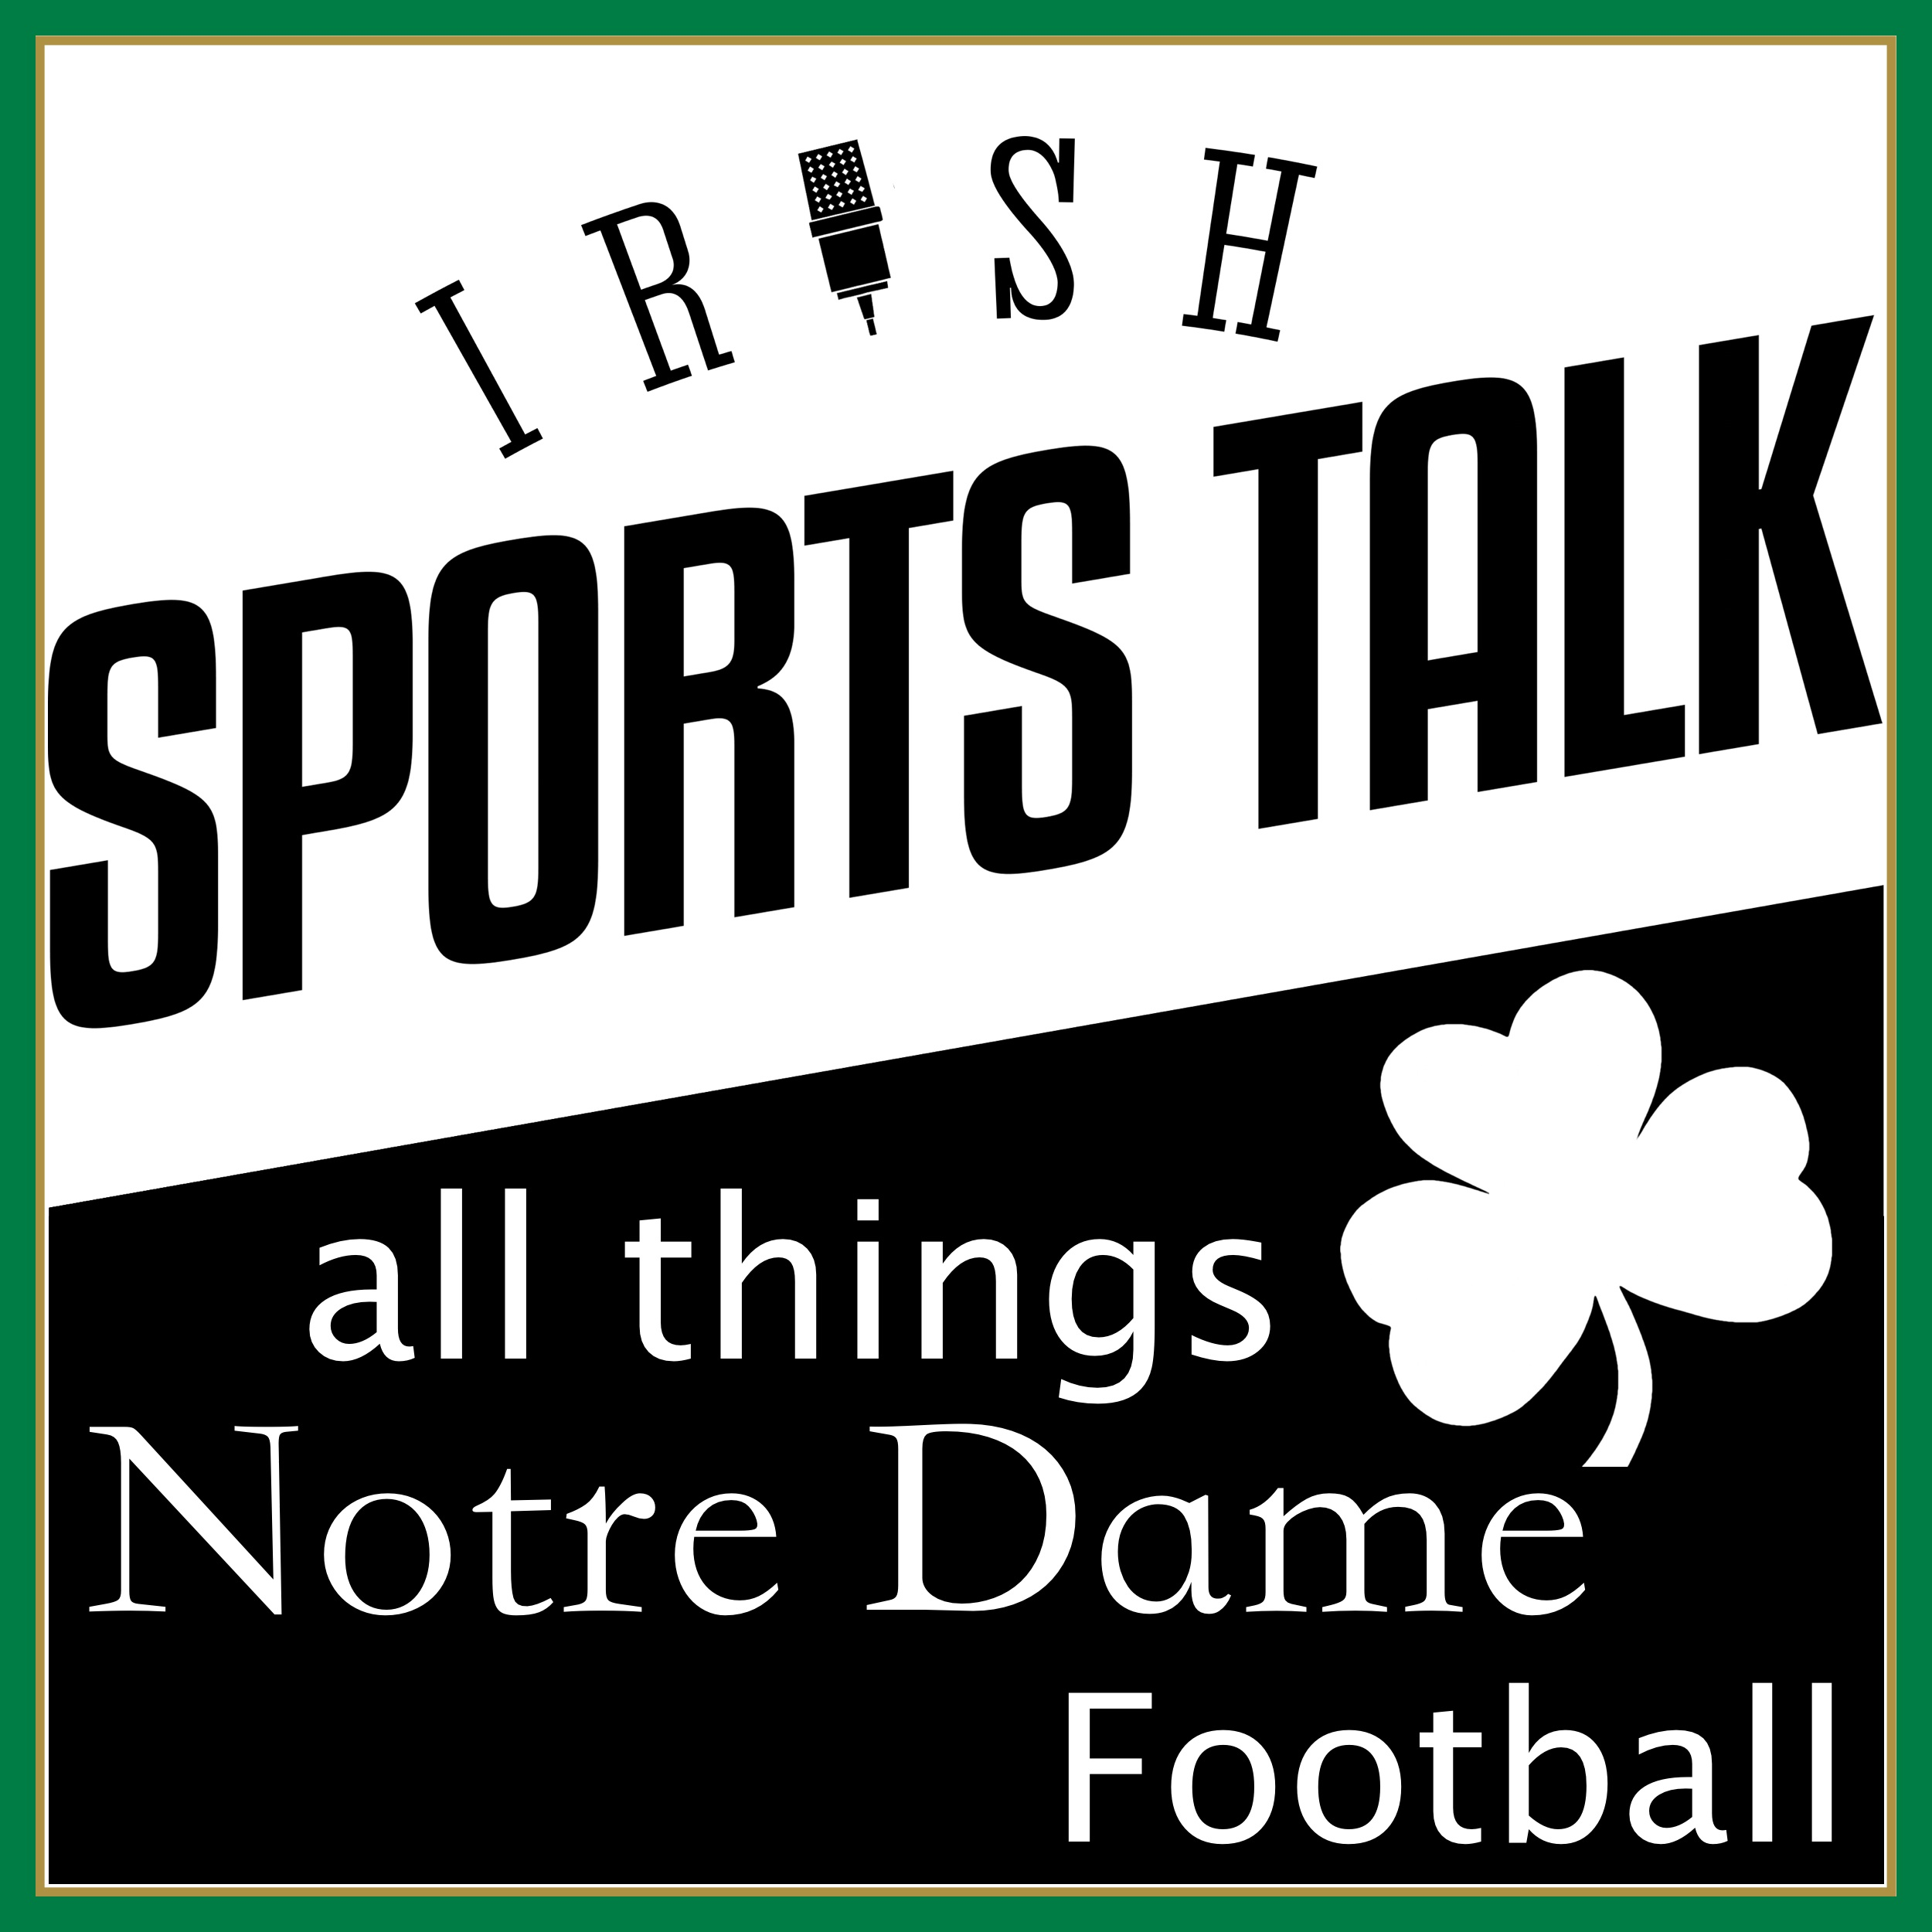 Irish Sports Talk: A Notre Dame Football Podcast